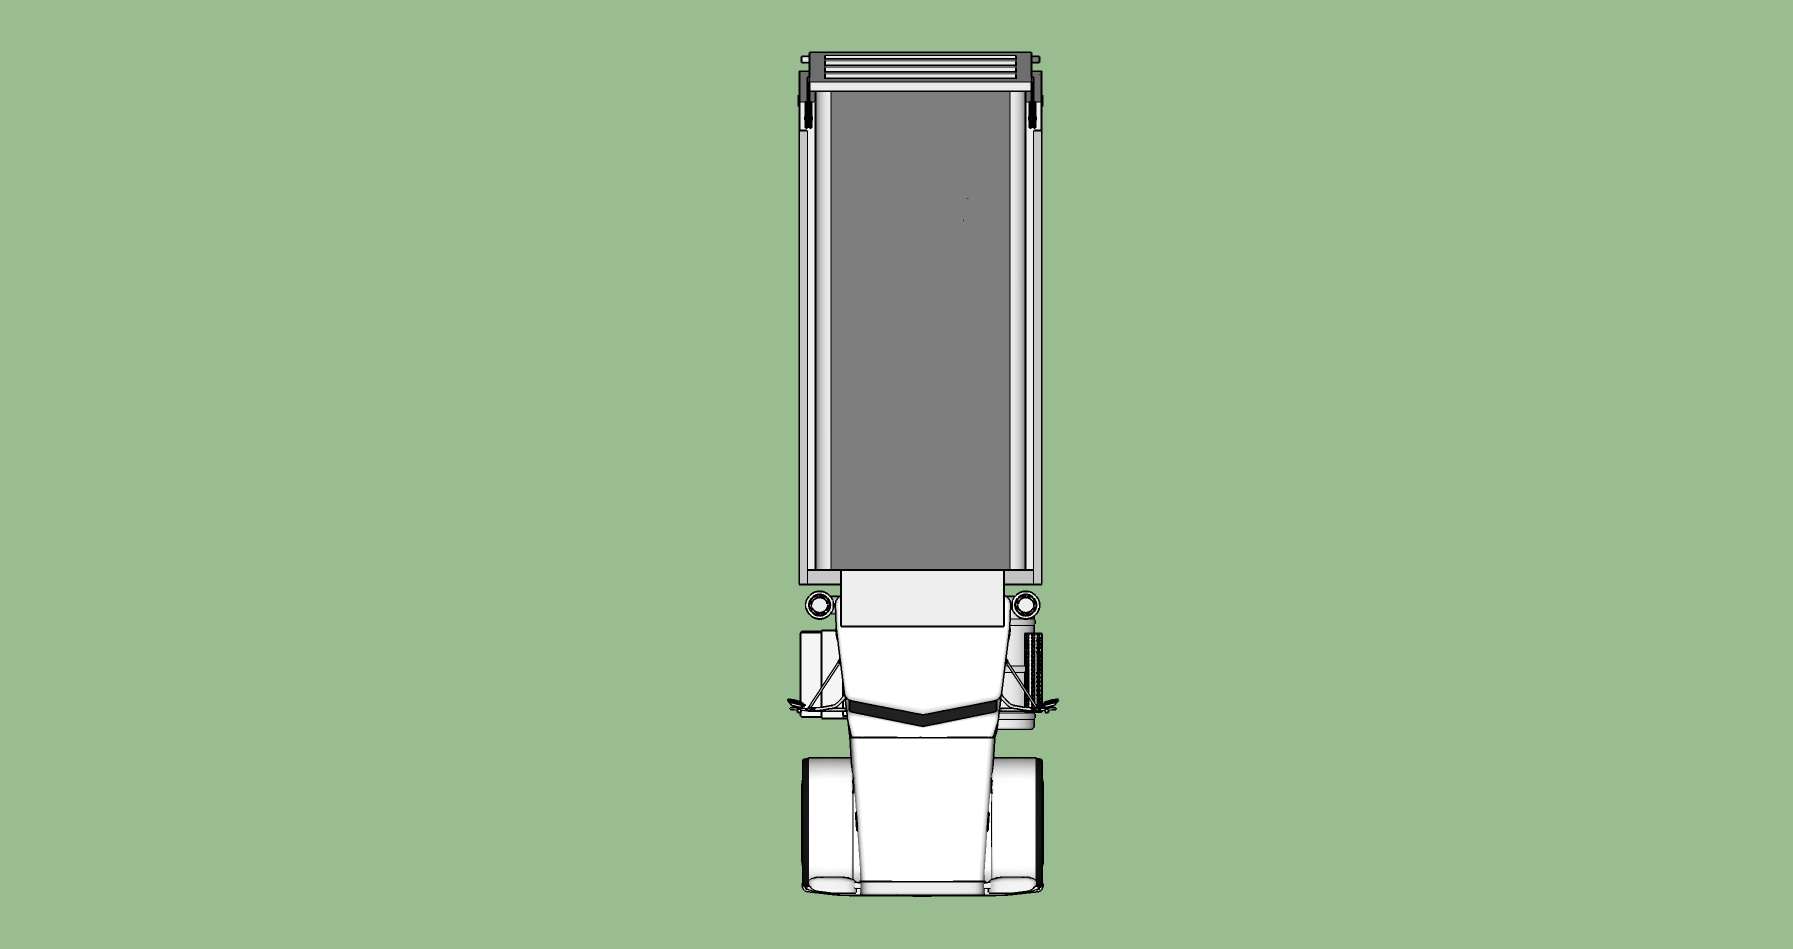 Solved: Looking for a dump truck block - Autodesk Community